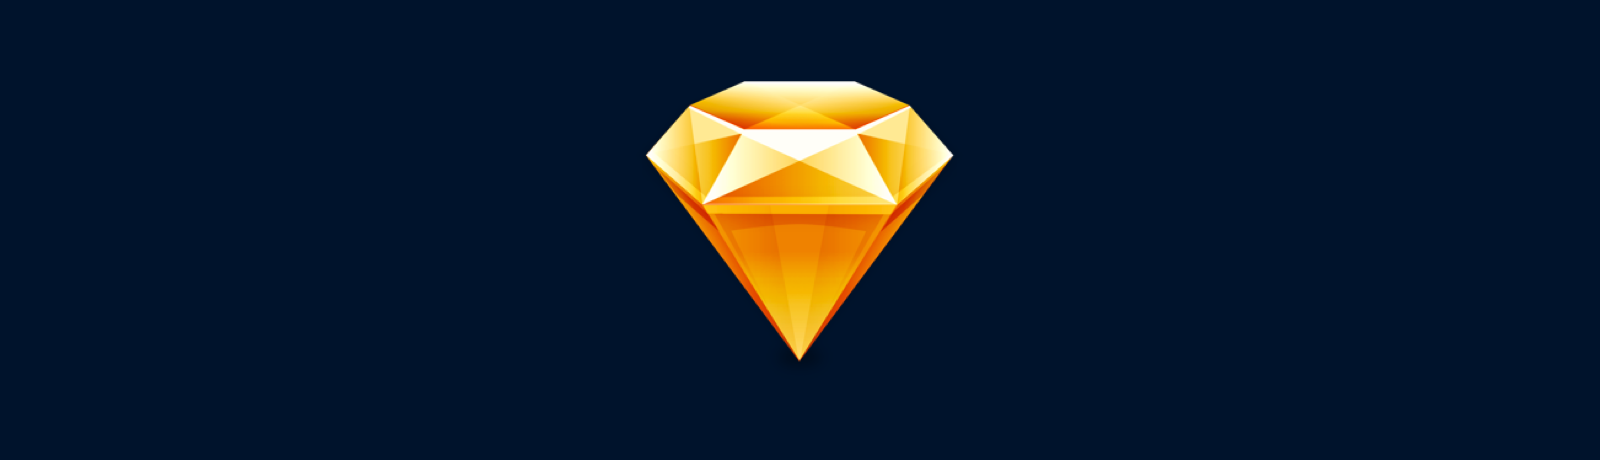 The Beginner's Guide to Writing Sketch Plugins Part 1 — Getting Started